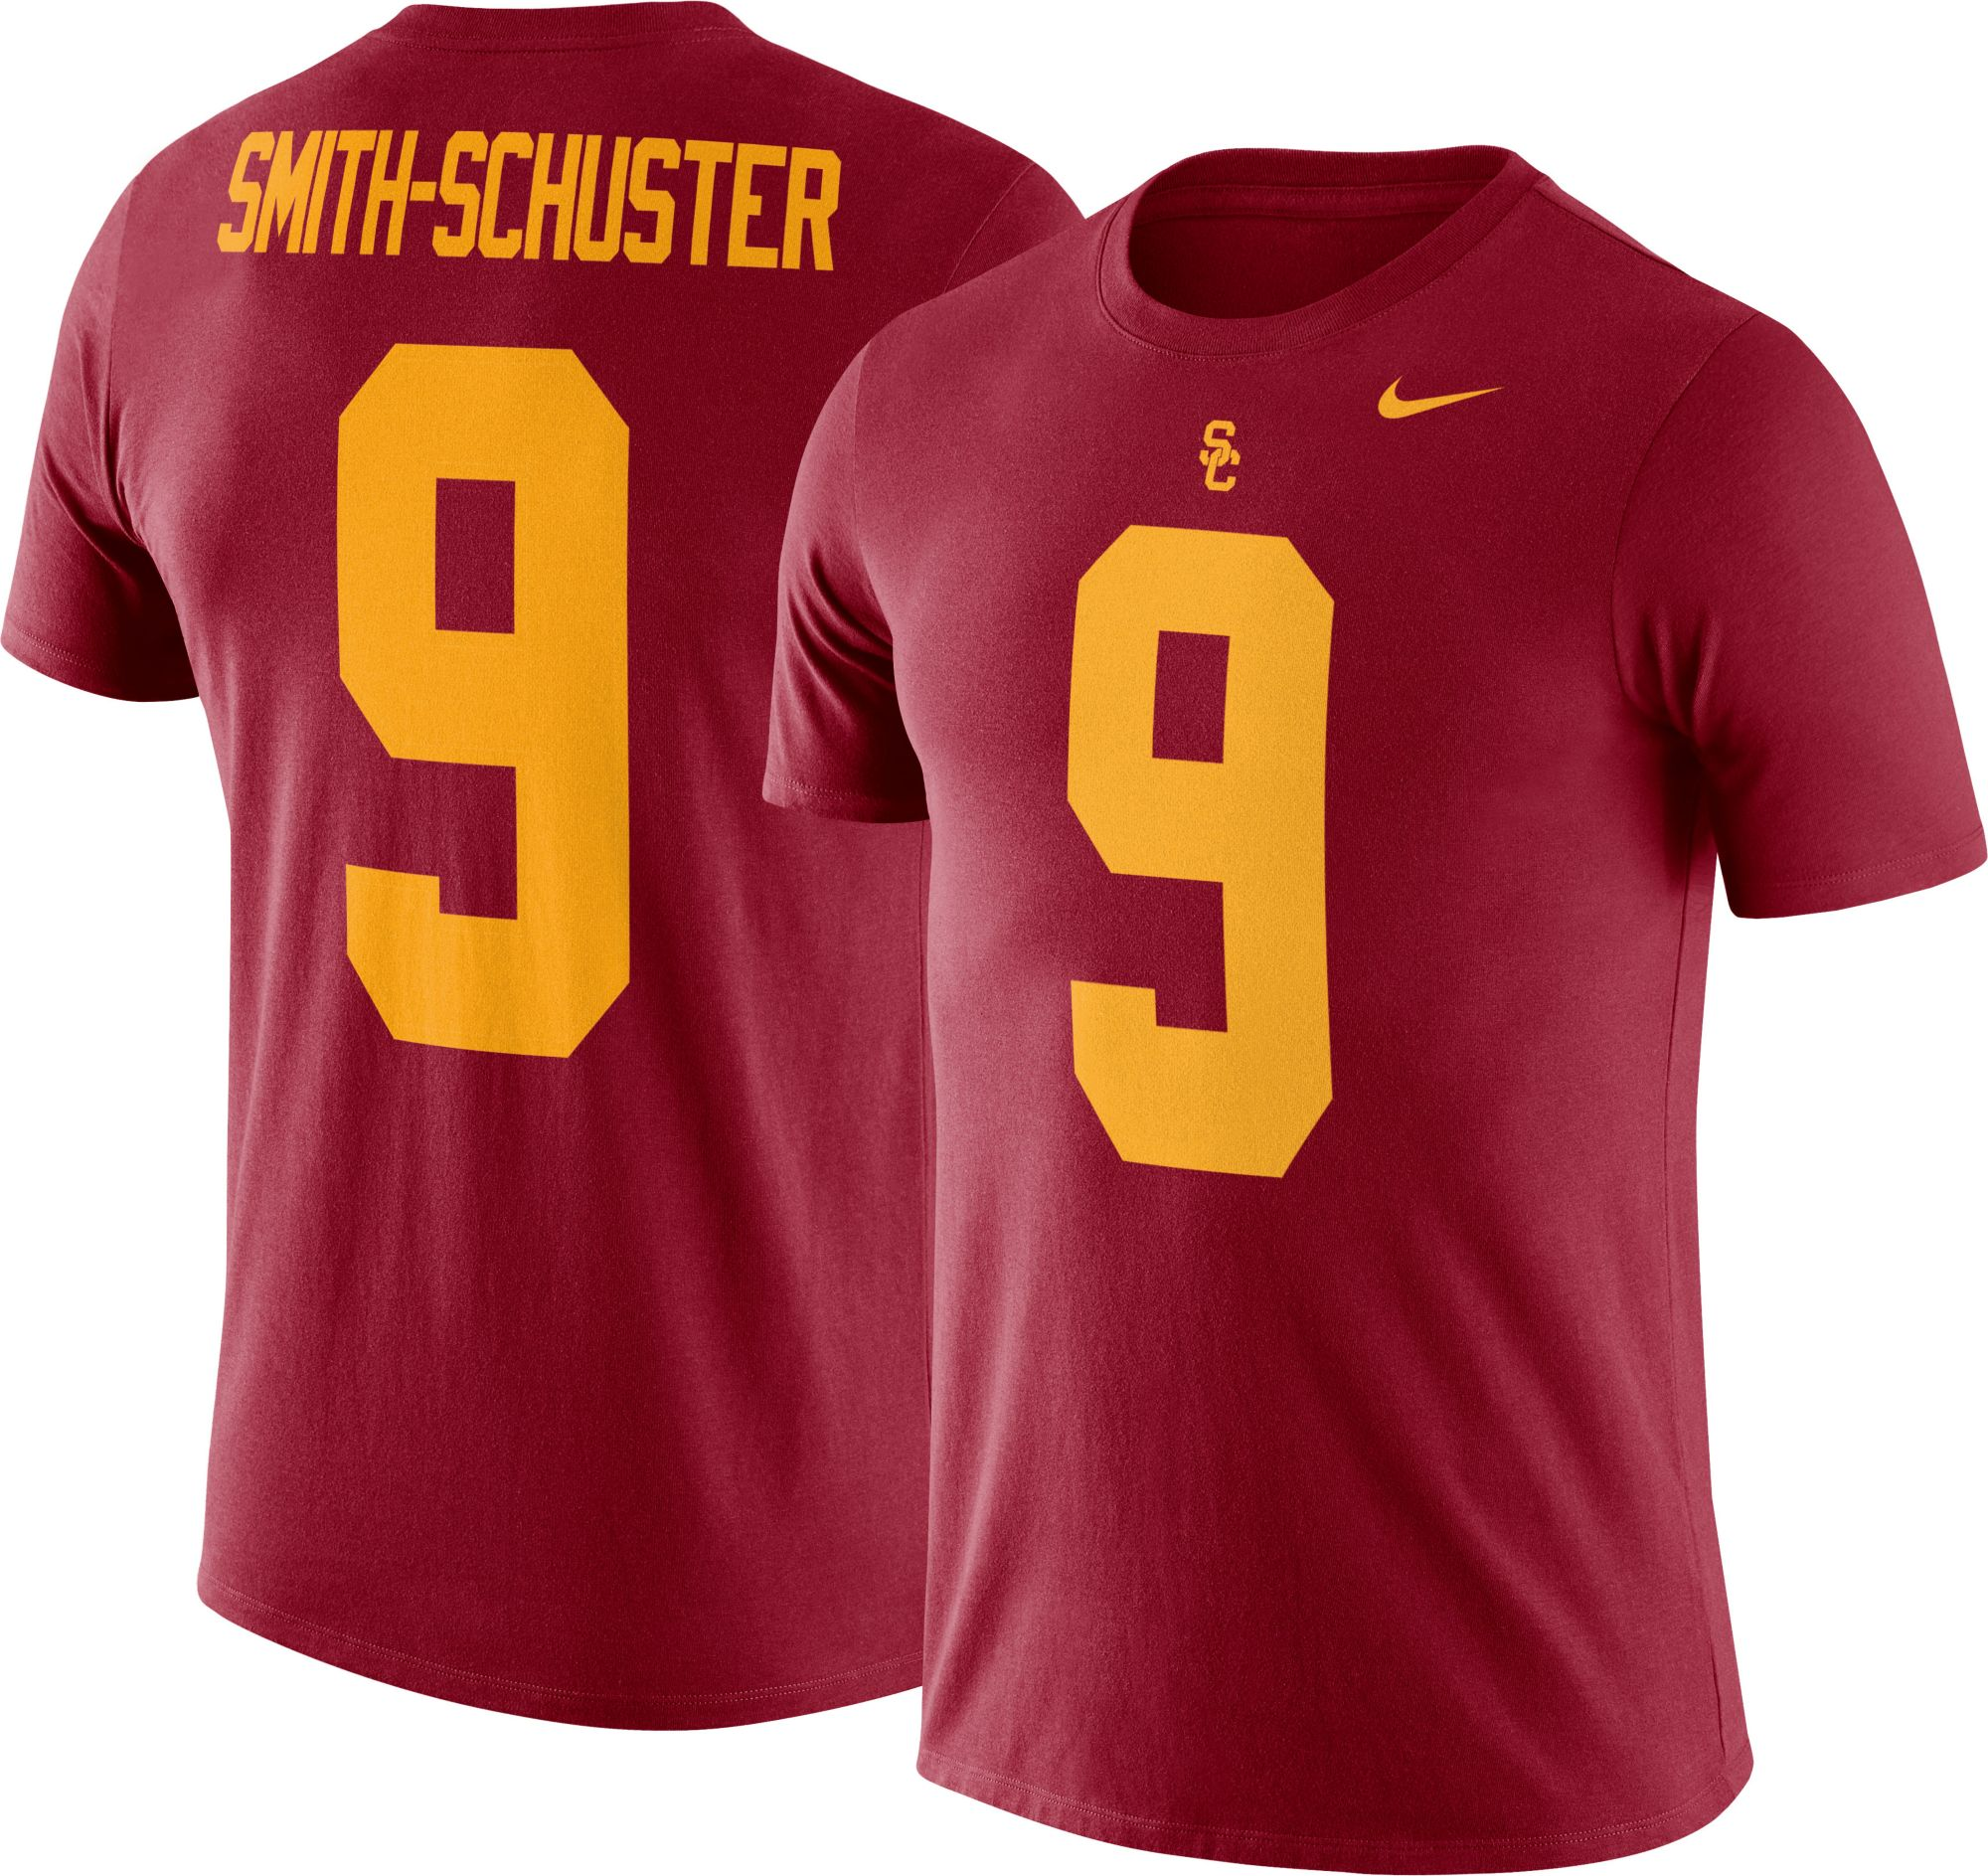 juju smith schuster shirt jersey